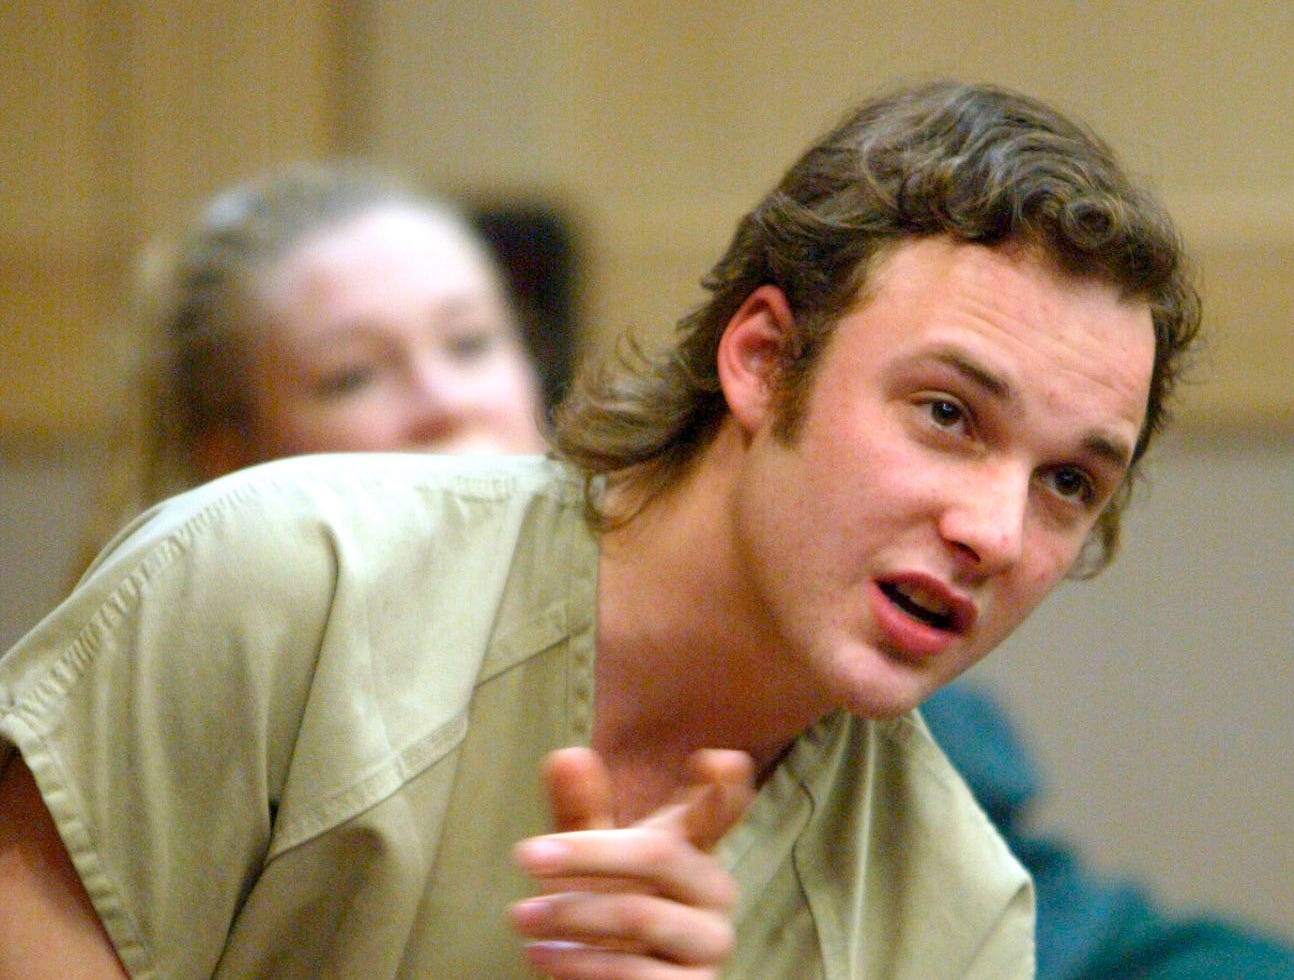 Jailed actor Brad Renfro, appearing in court Thursday, Feb. 7, 2002 before Broward Circuit Judge Ronald Rothschild for violation of probation charges, talks to his grandmother during a break in the proceedings.